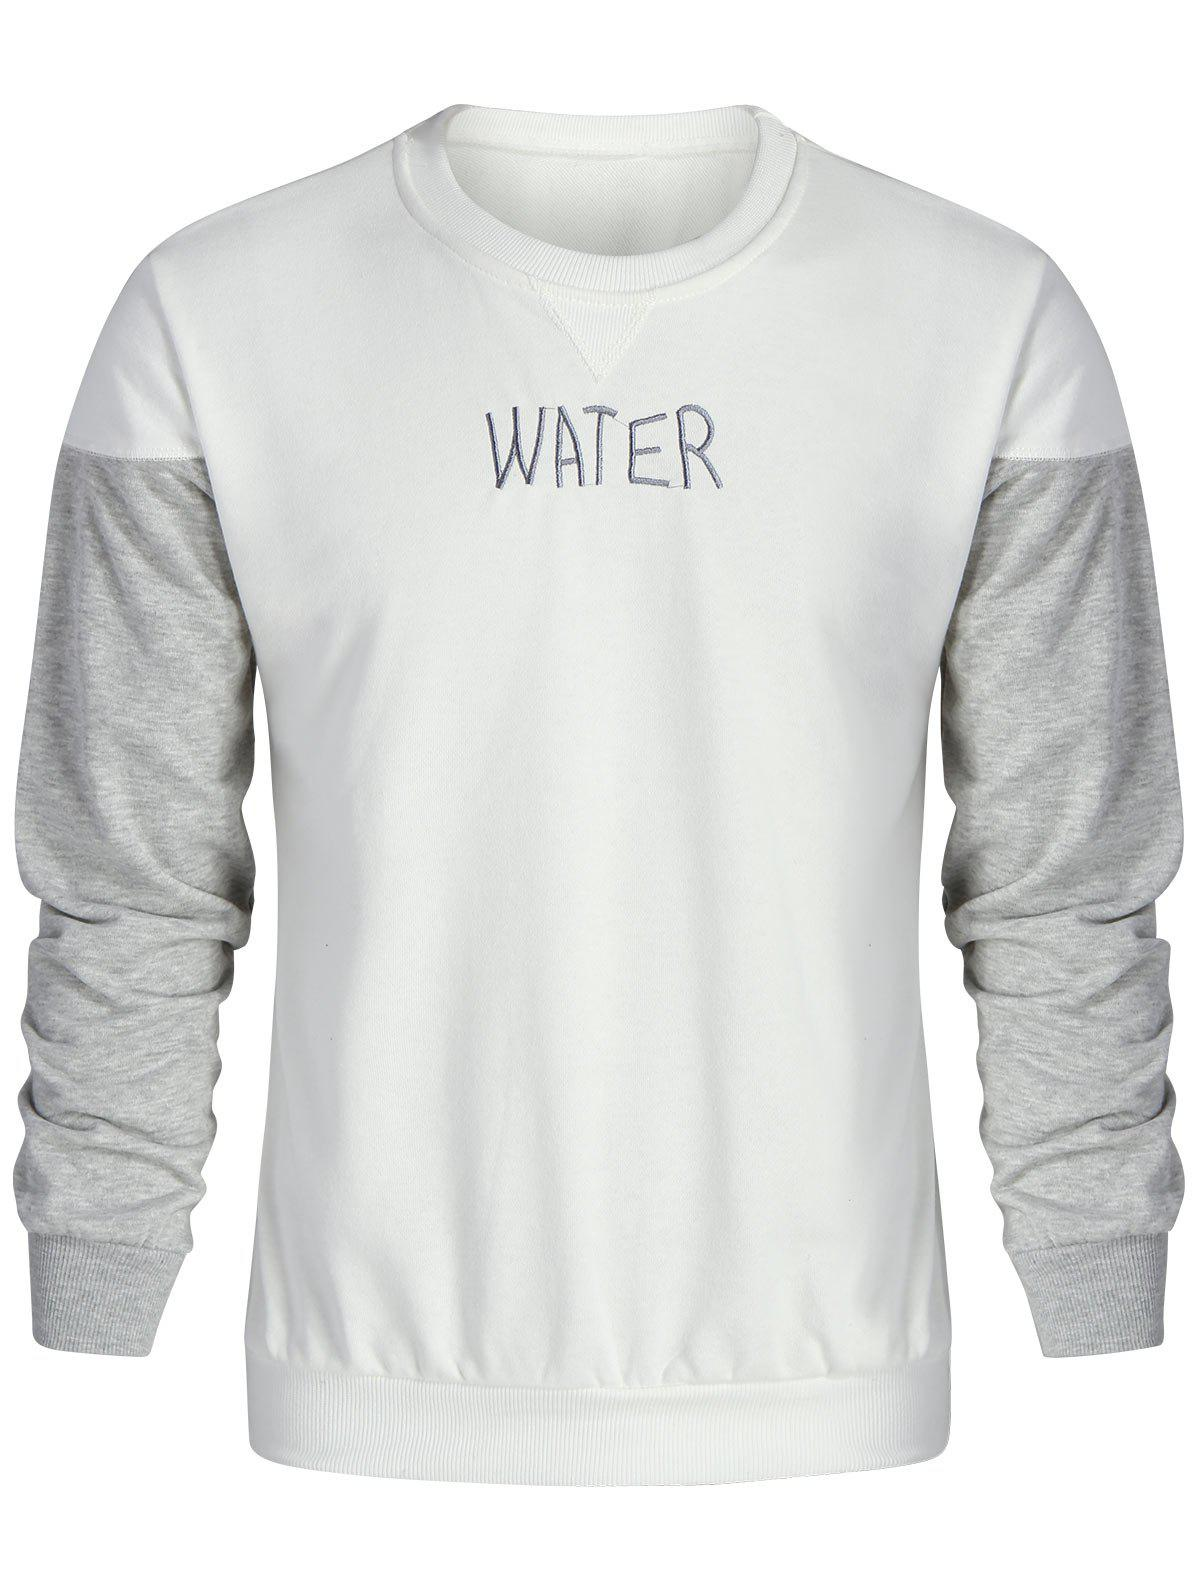 Water Embroidered Color Block Sweatshirt 229366002